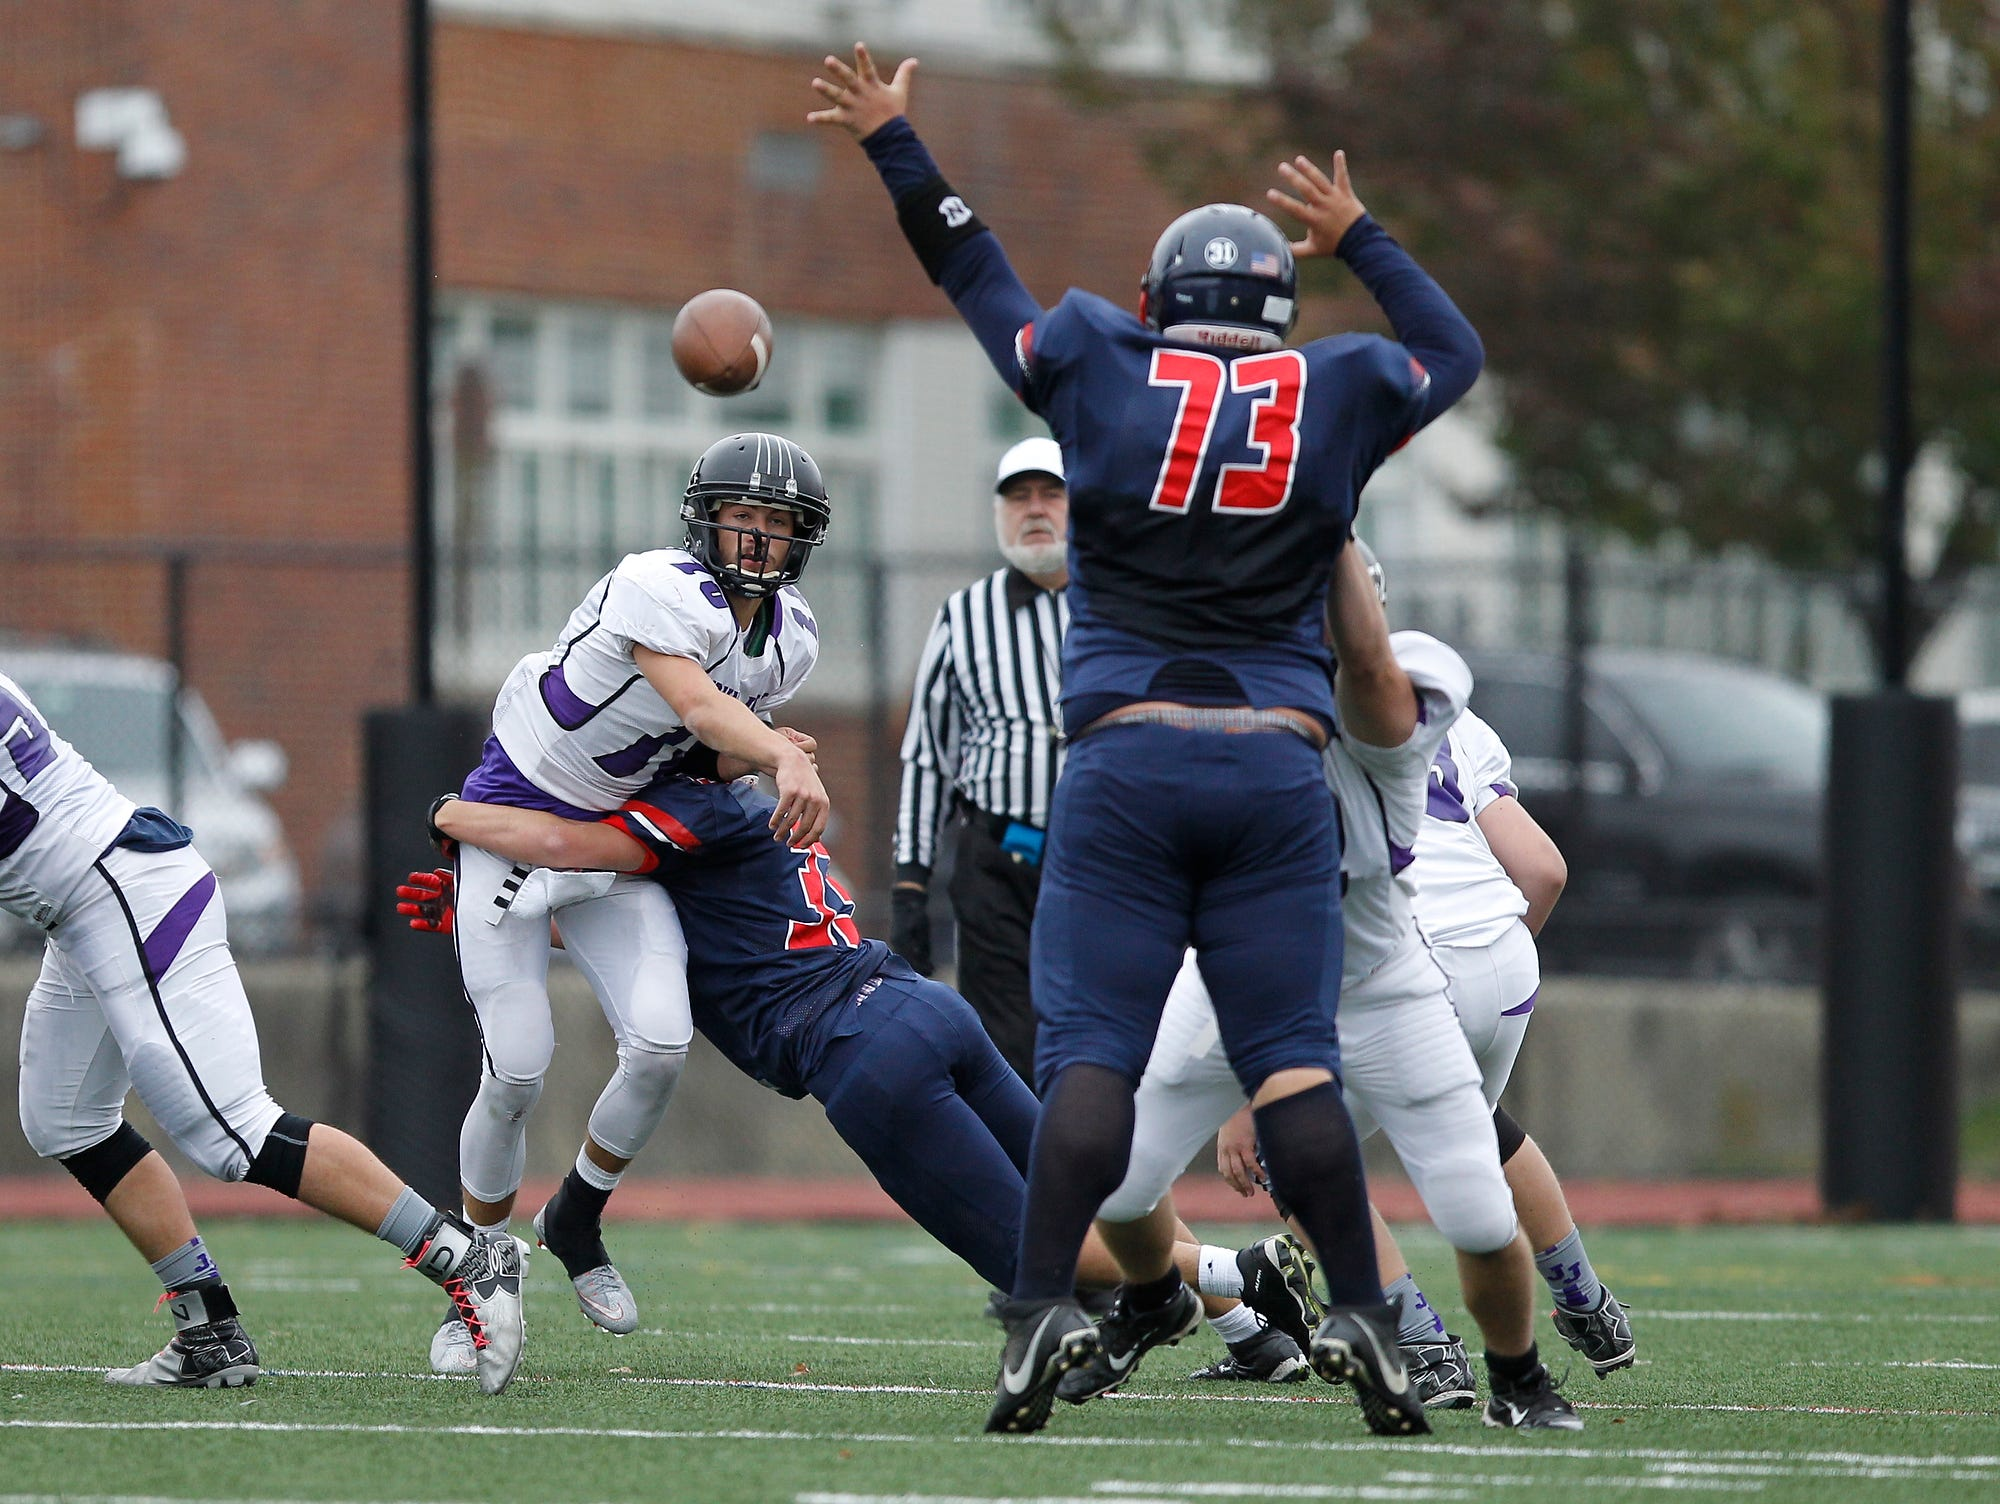 Eastchester's Chris Gorman (73) reaches to block a pass thrown by John Jay quarterback Hunter Keetch (10) during a varsity football game at Eastchester High School on Saturday, Oct. 24, 2015.